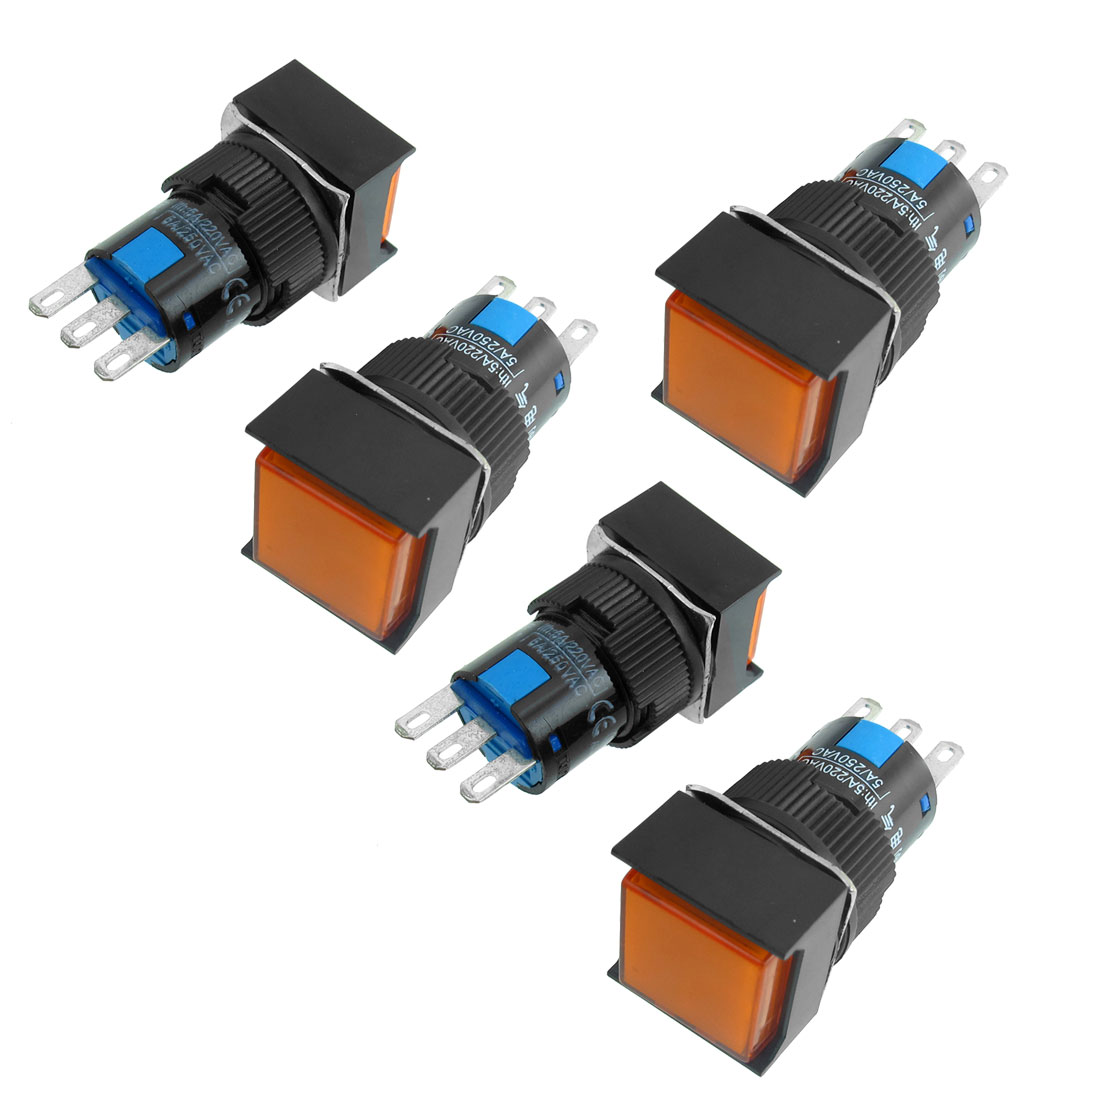 5 x AC 250V 5A 3 Pins 1NO 1NC Momentary Orange Square 16mm Push Button Switch